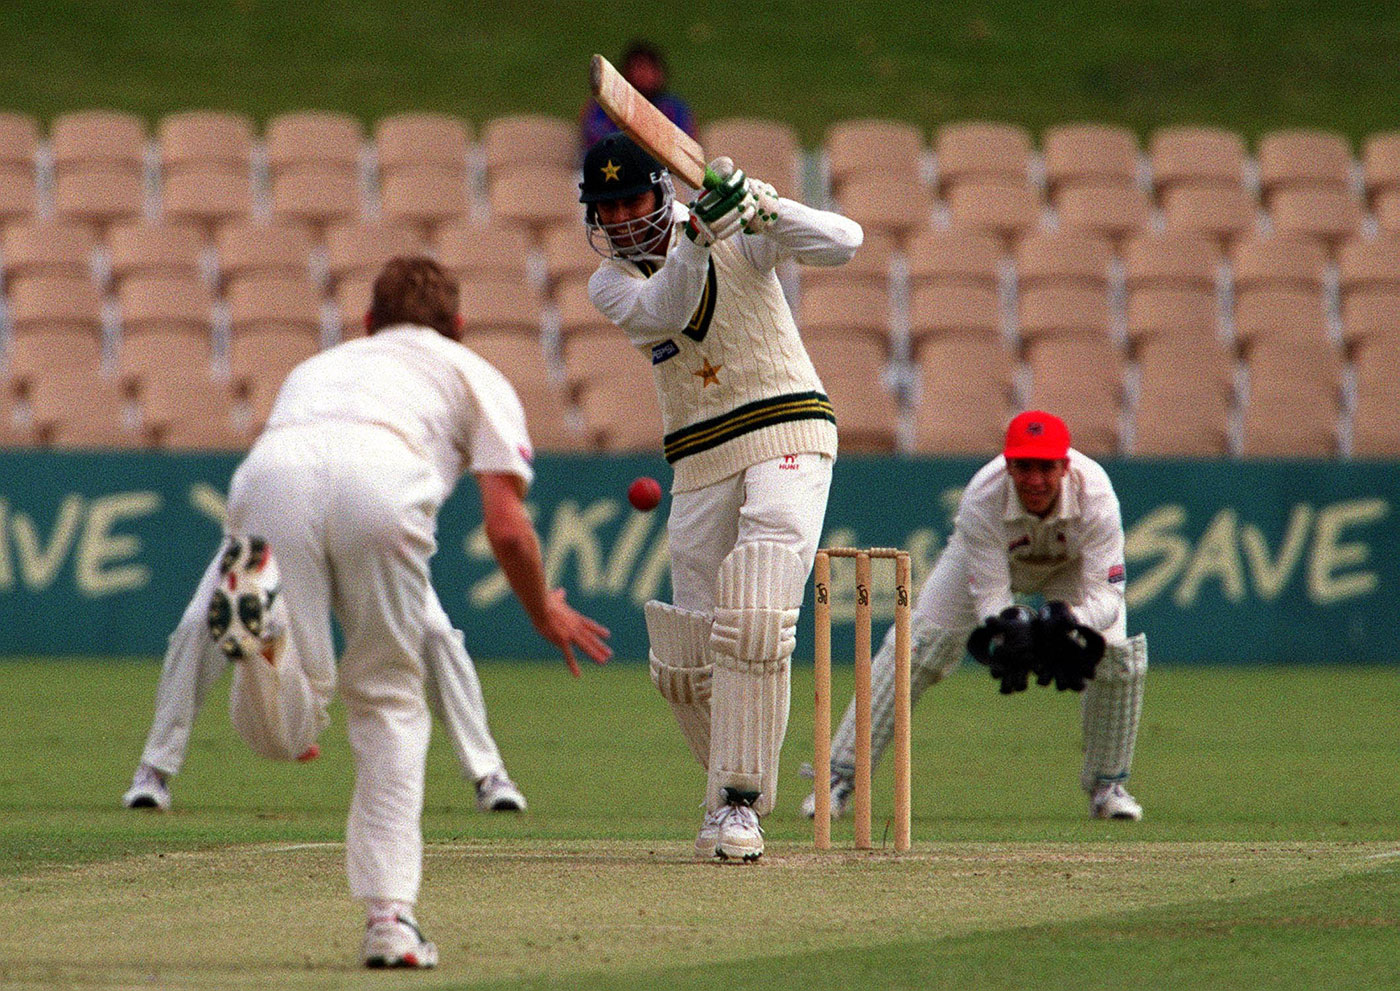 In two Tests in Australia in 1999-2000, Wasim made 129 runs at 32.25